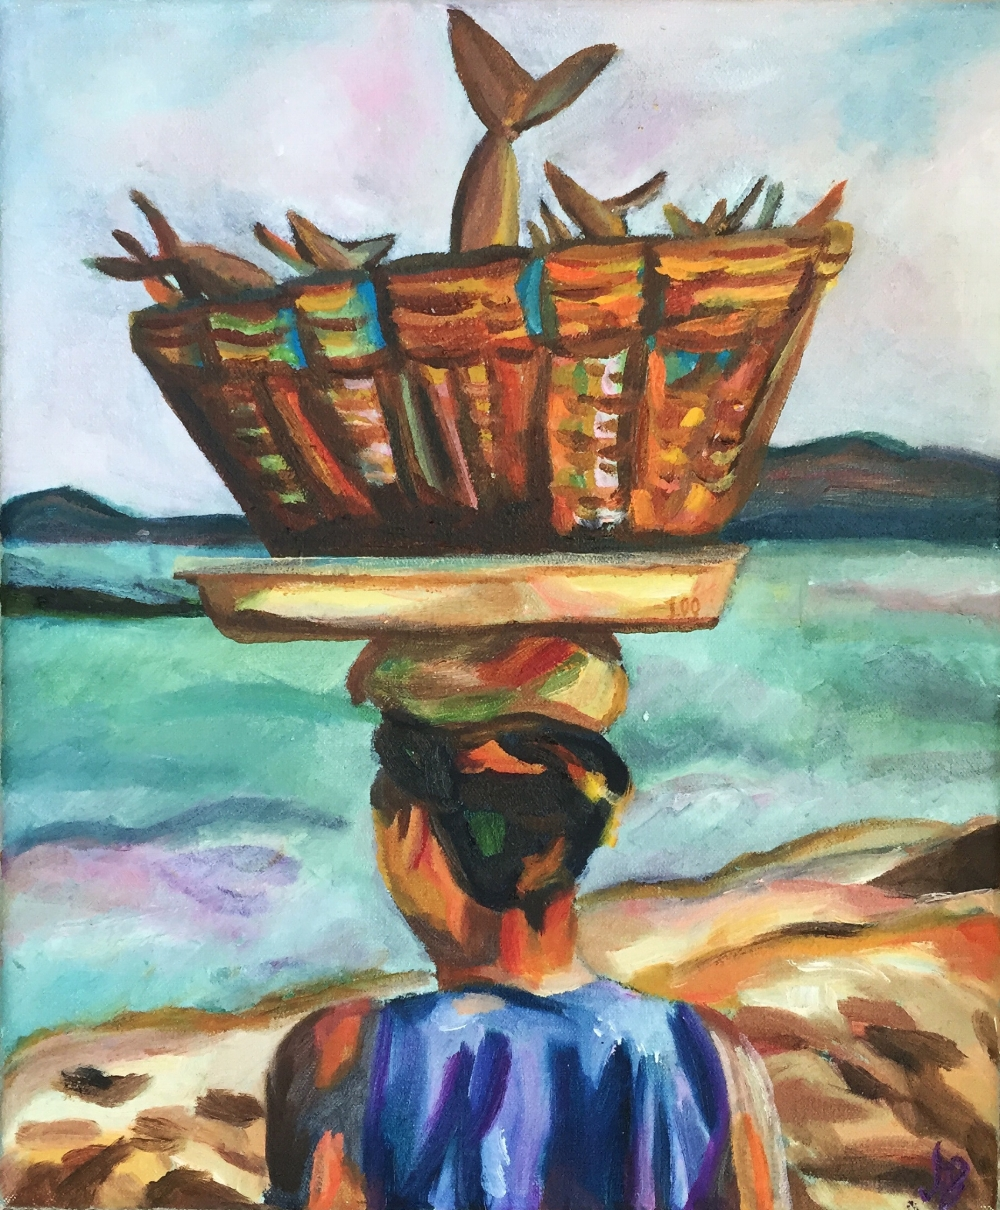 Lady and the sea (2) | Oil on canvas | 2015